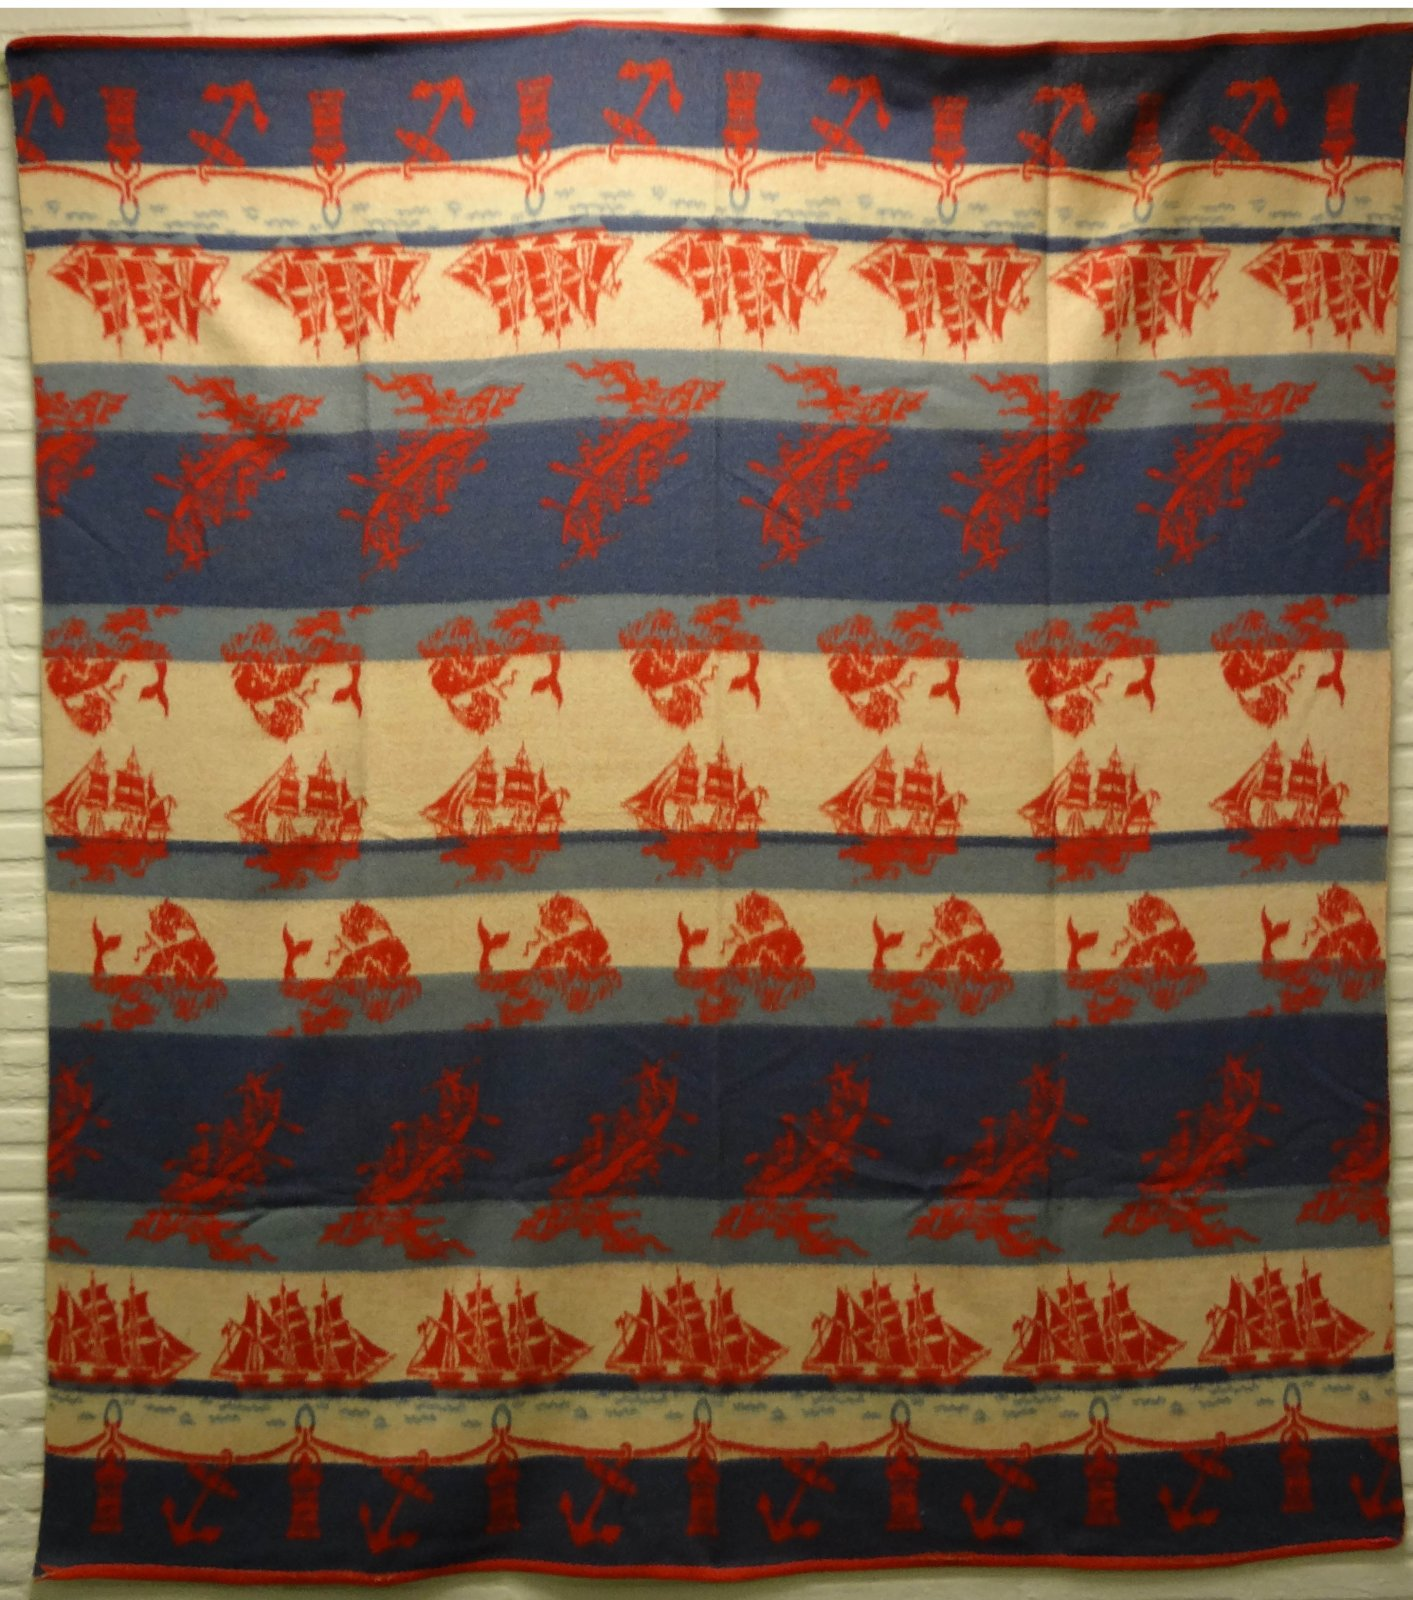 BEACON VINTAGE BLANKET NAUTICAL SHIPS AND WHALES